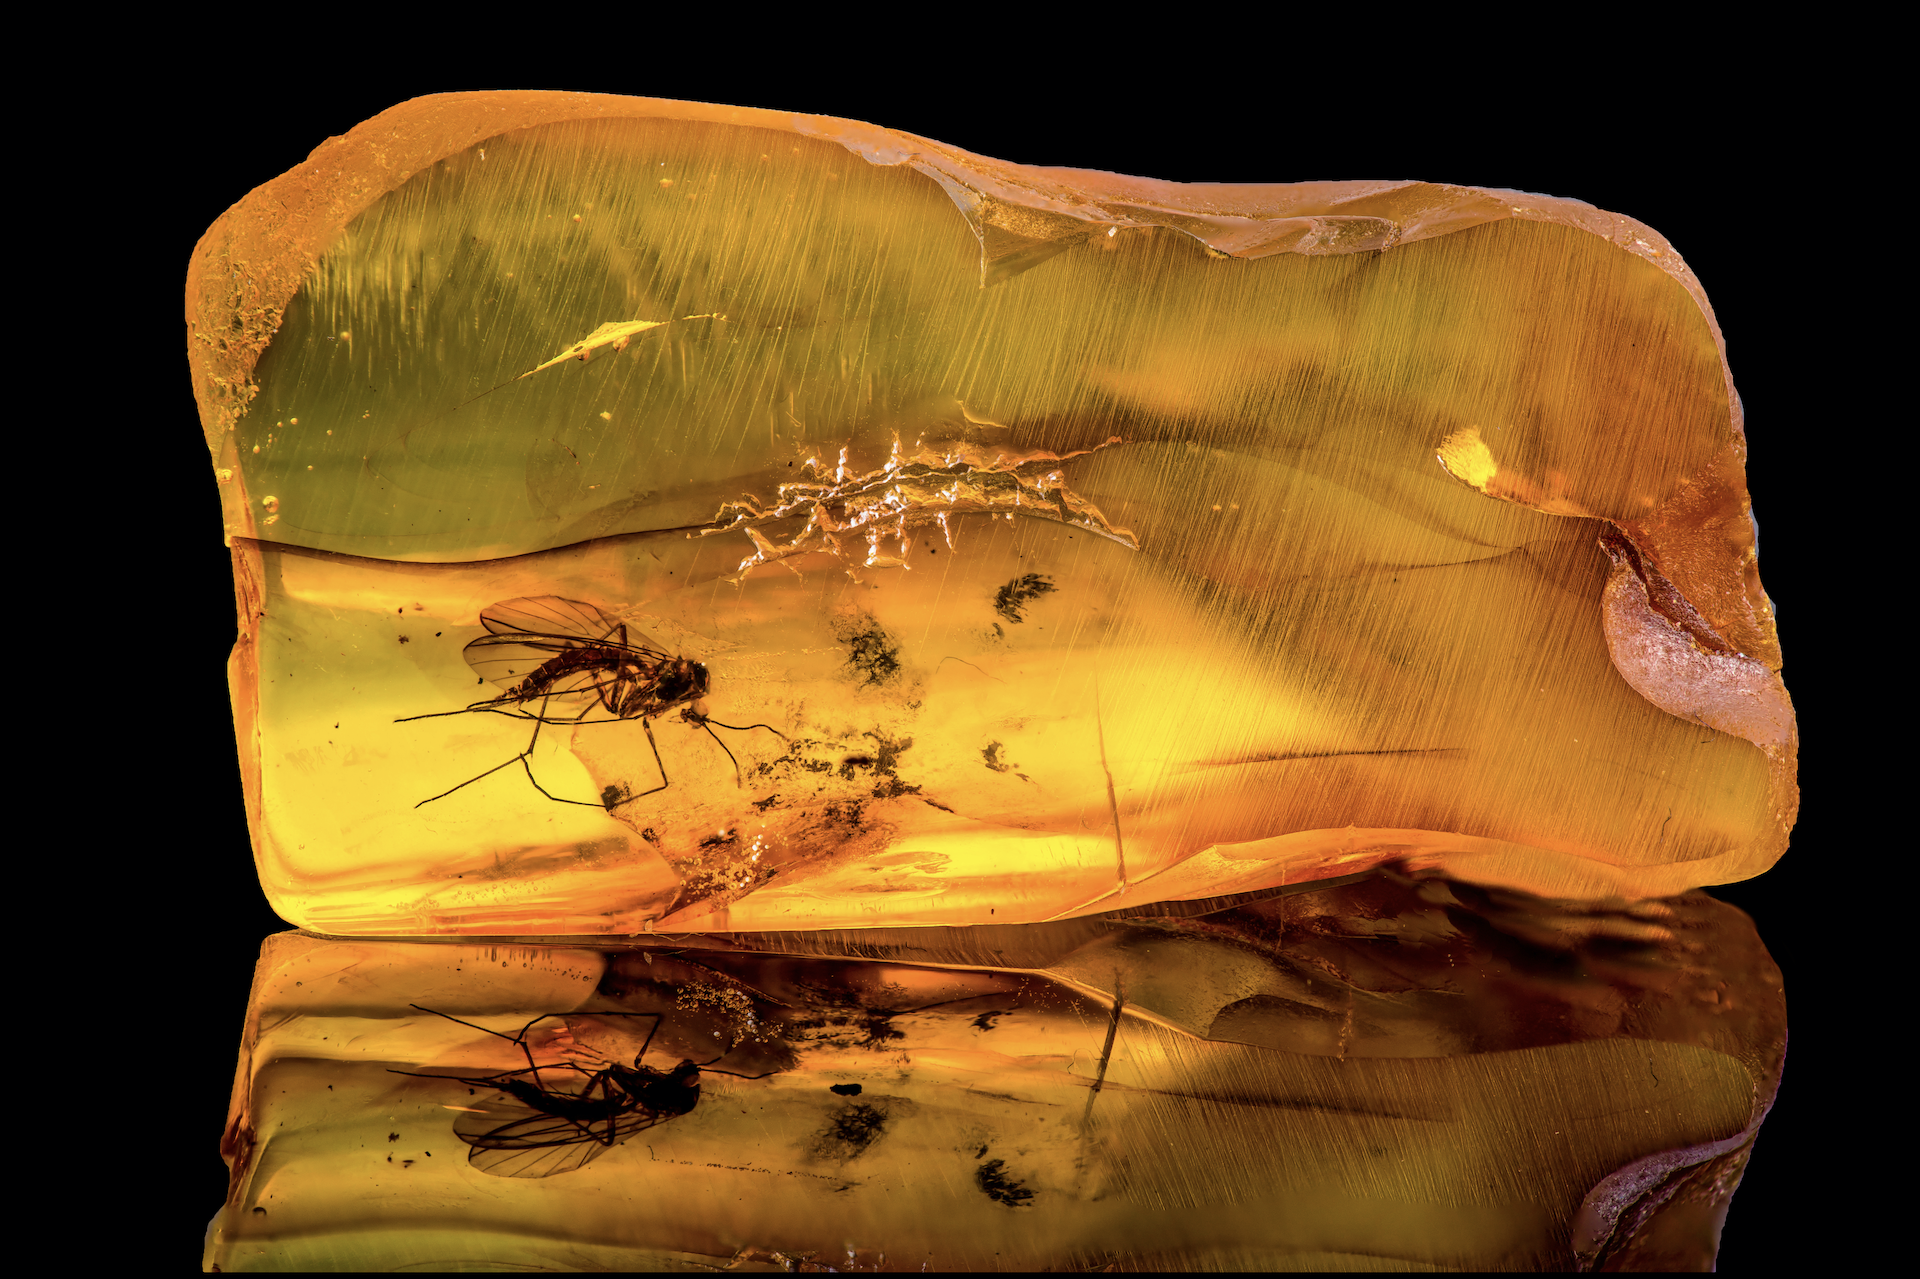 Mosquito trapped in amber, a reference to the movie Jurassic Park.